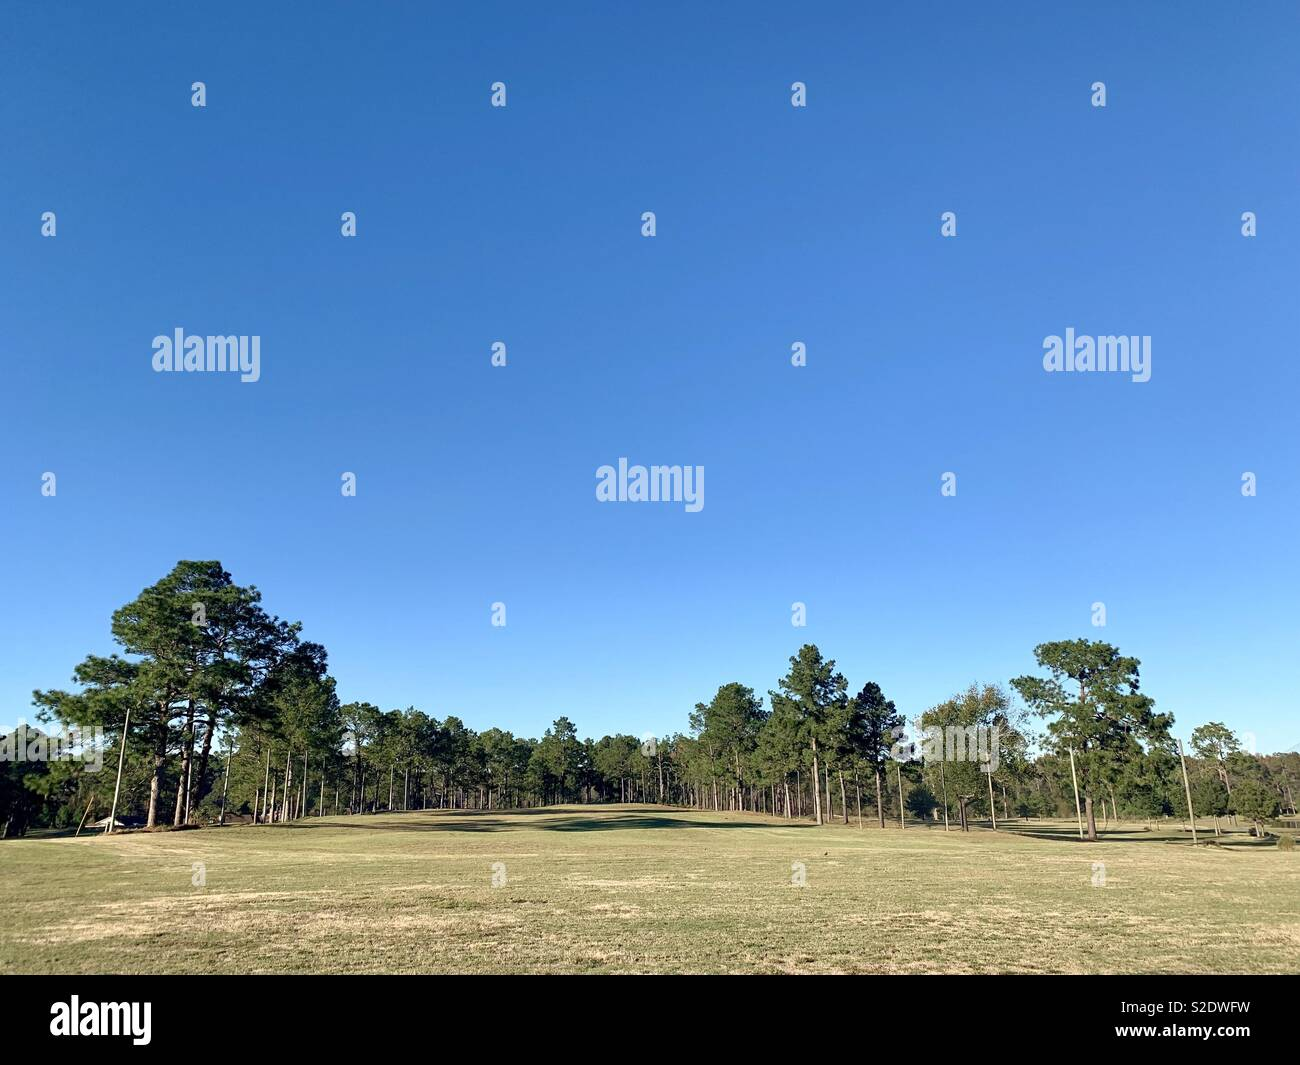 The fairway of a golf course surrounded with trees with clear blue sky in a horizontal image format. - Stock Image